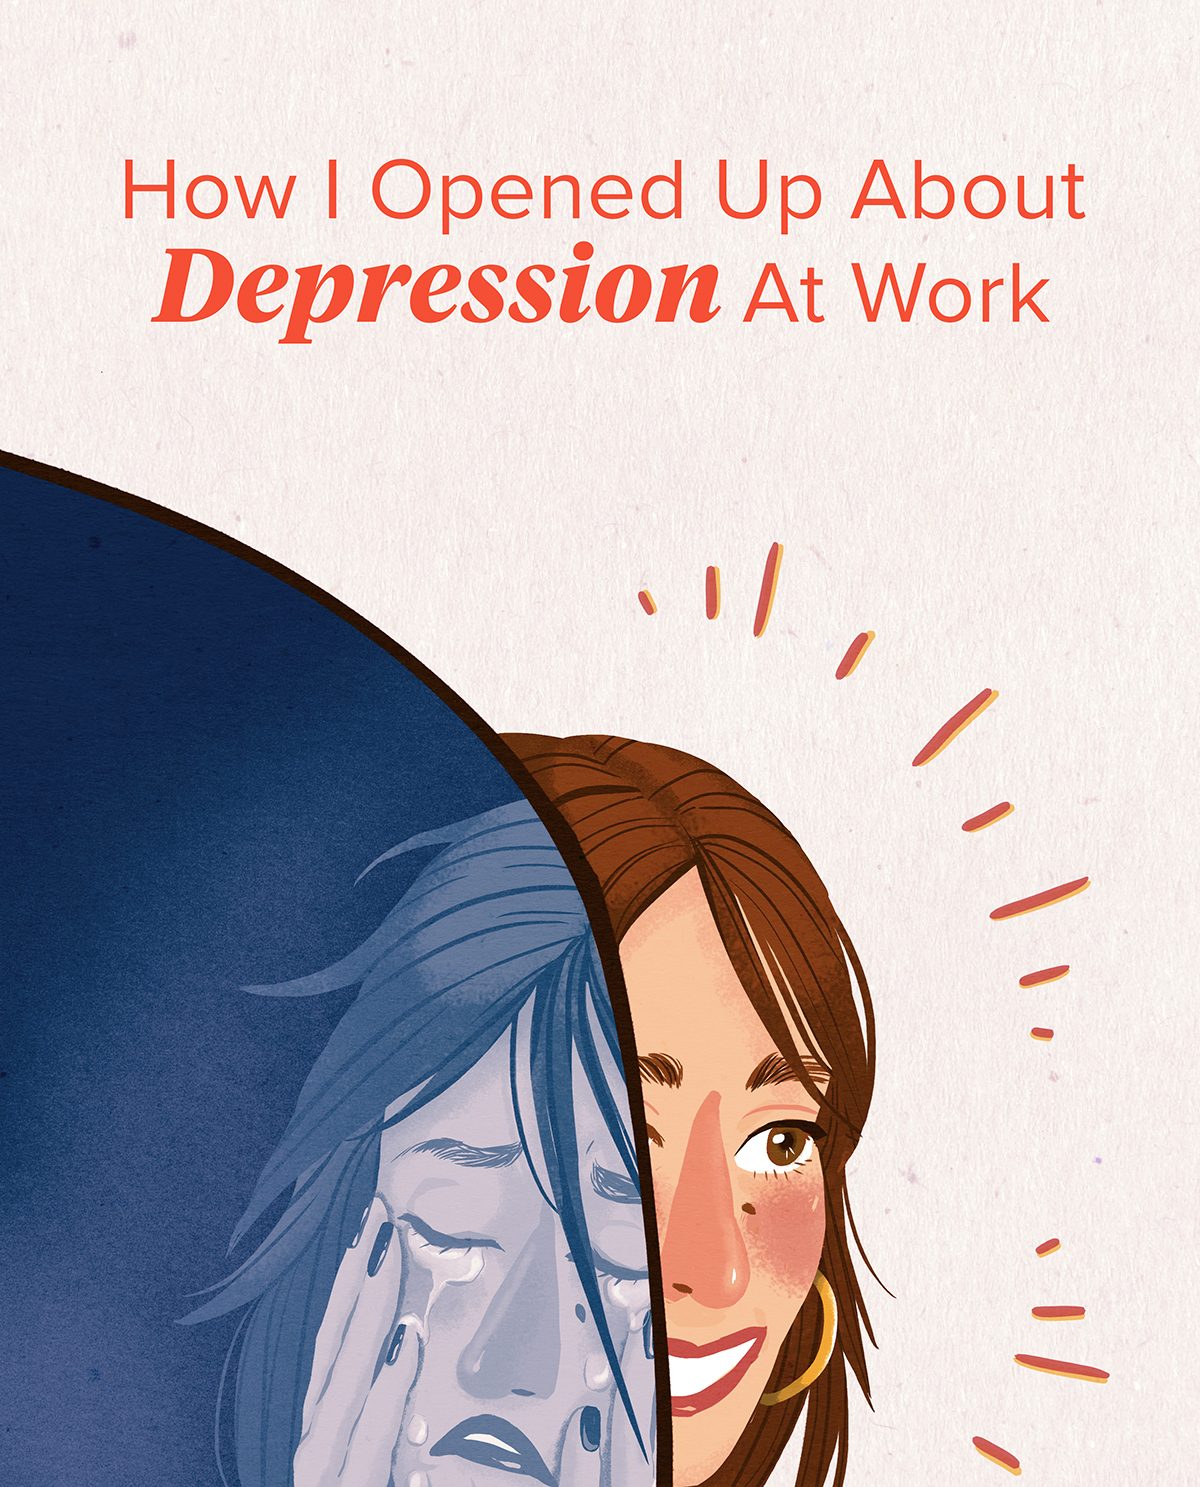 Can T Do My Job Because Of Anxiety being open about depression at work